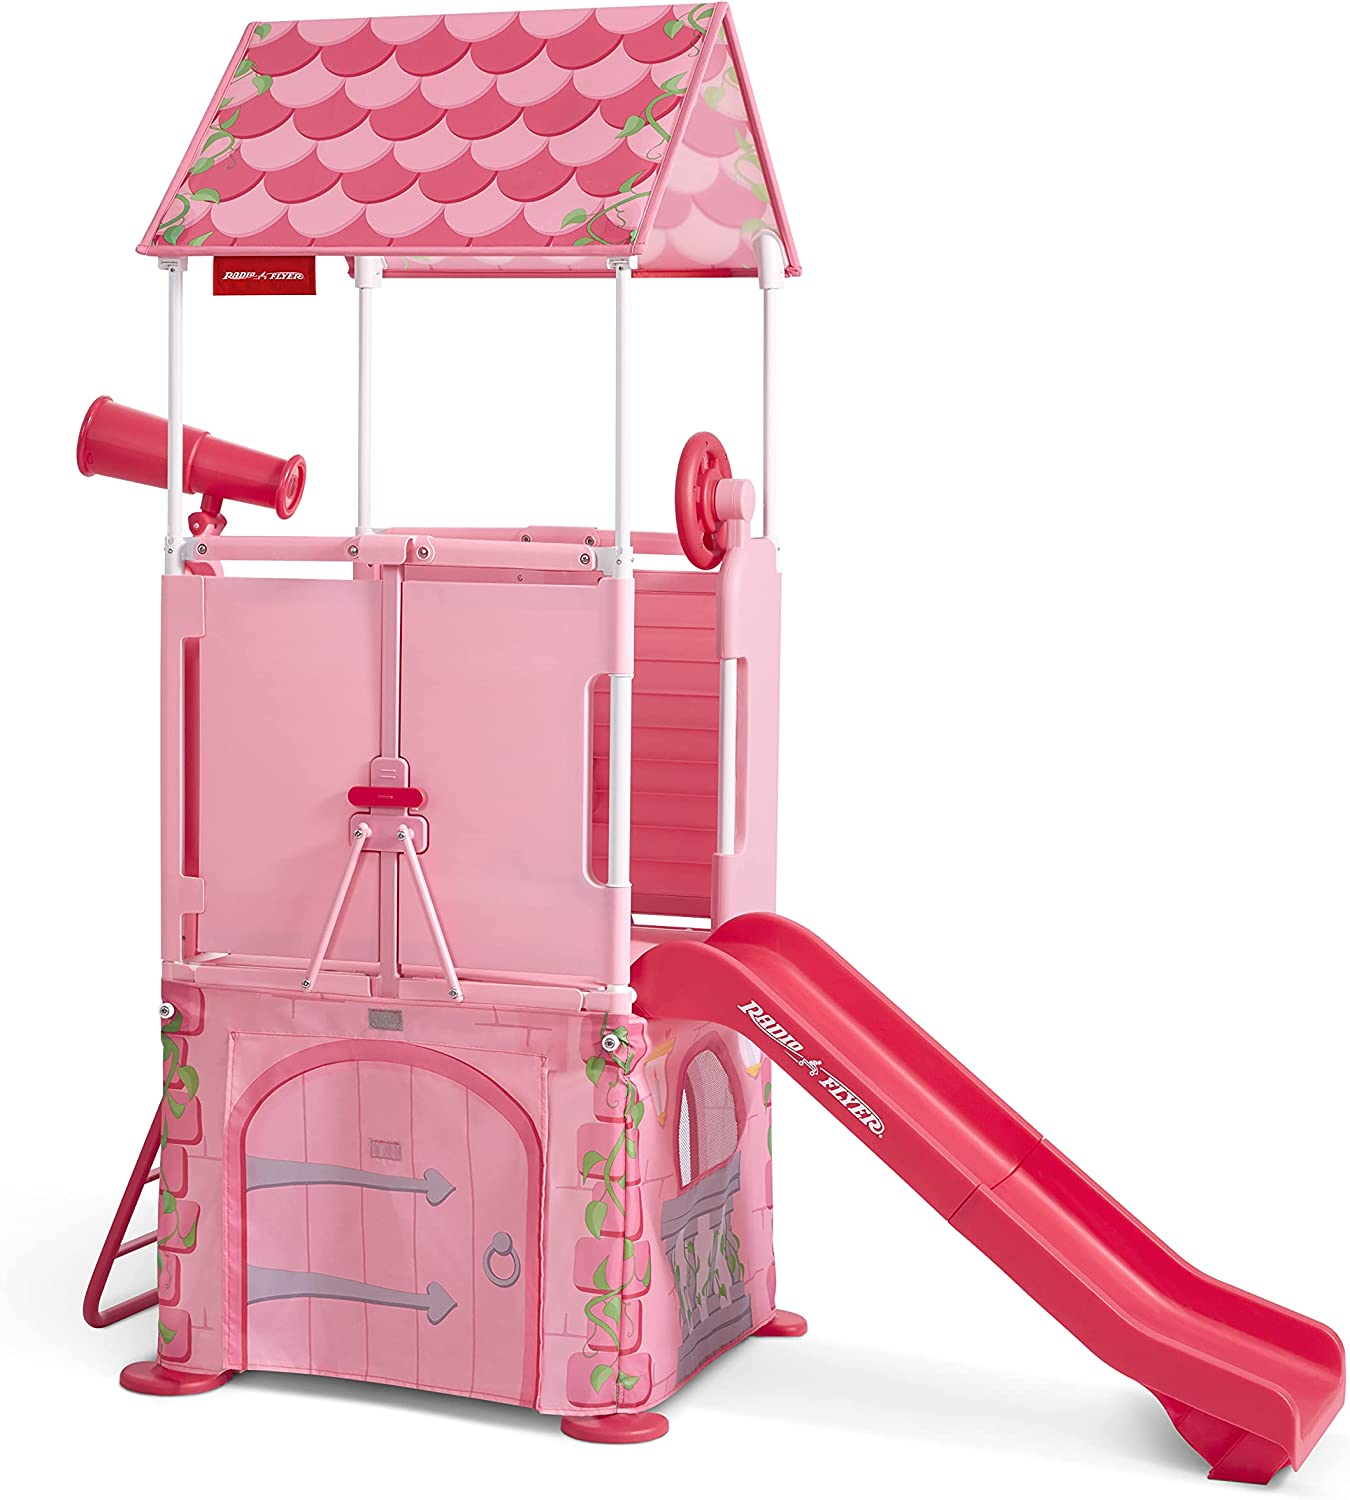 Radio Flyer Play Fold Choice Away Princess A Castle Toddler Free shipping on posting reviews Climber